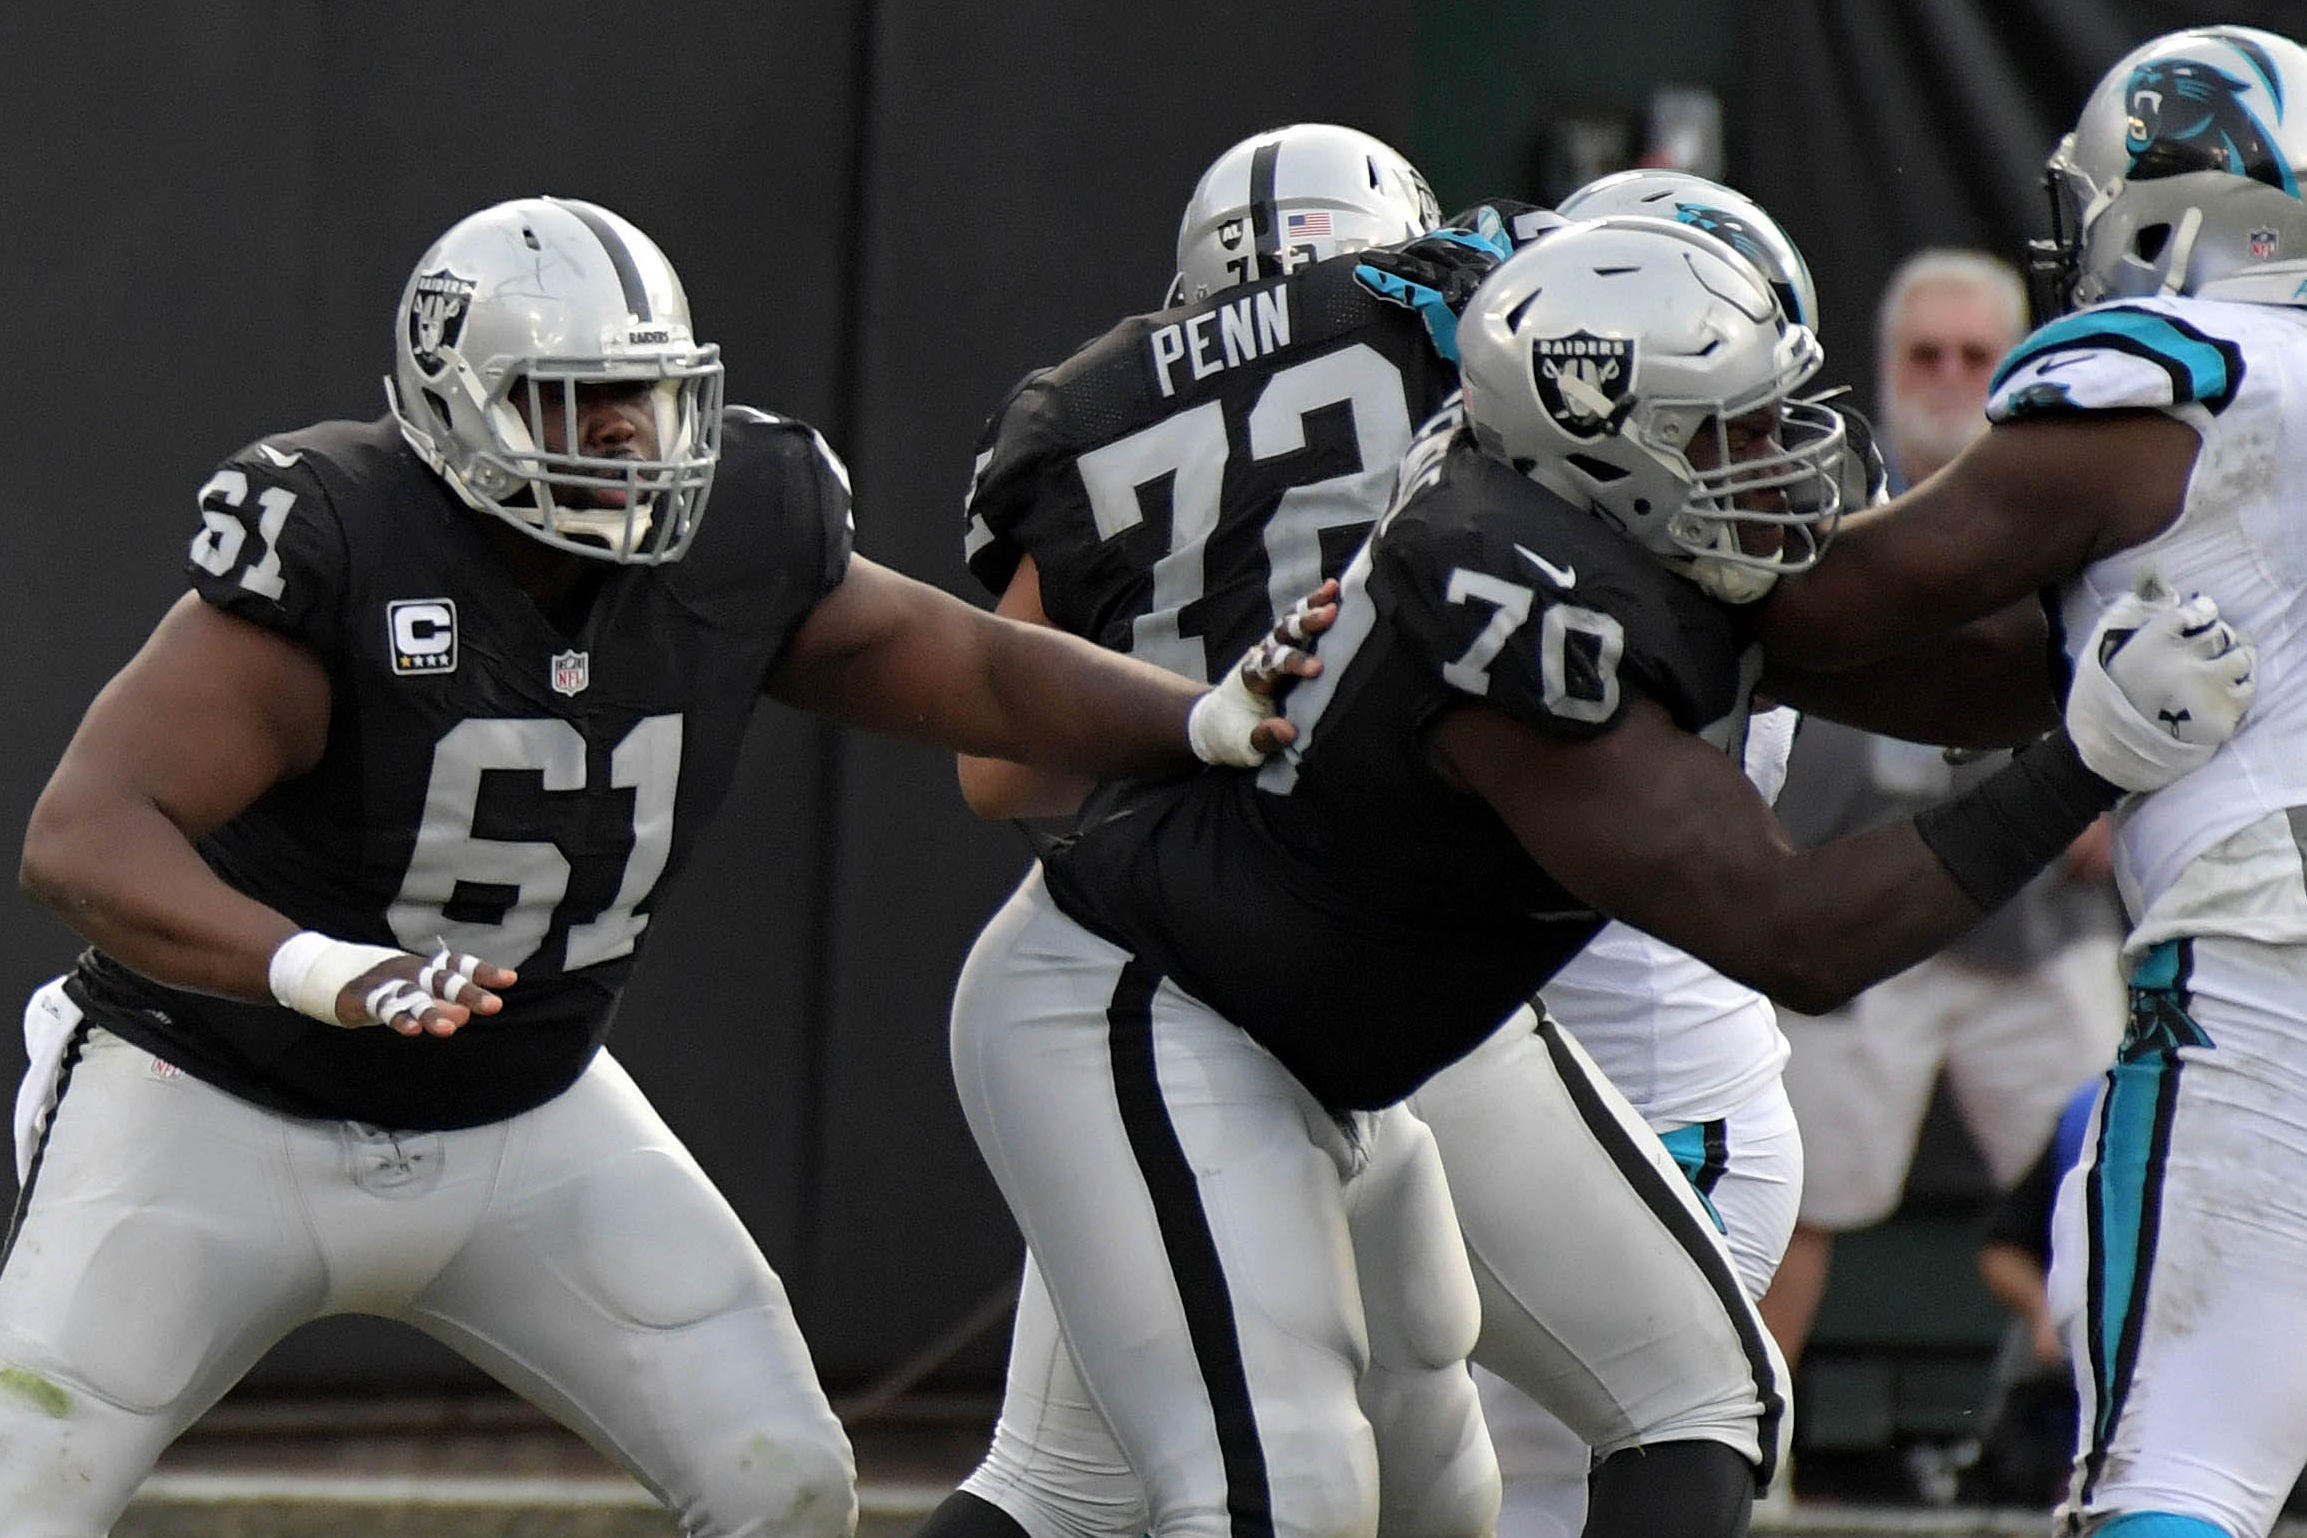 Oakland Raiders quarterback Derek Carr (4) throws as center Rodney Hudson (61) and offensive guard Kelechi Osemele (70) block against the Carolina Panthers during the second half at Oakland-Alameda County Coliseum.